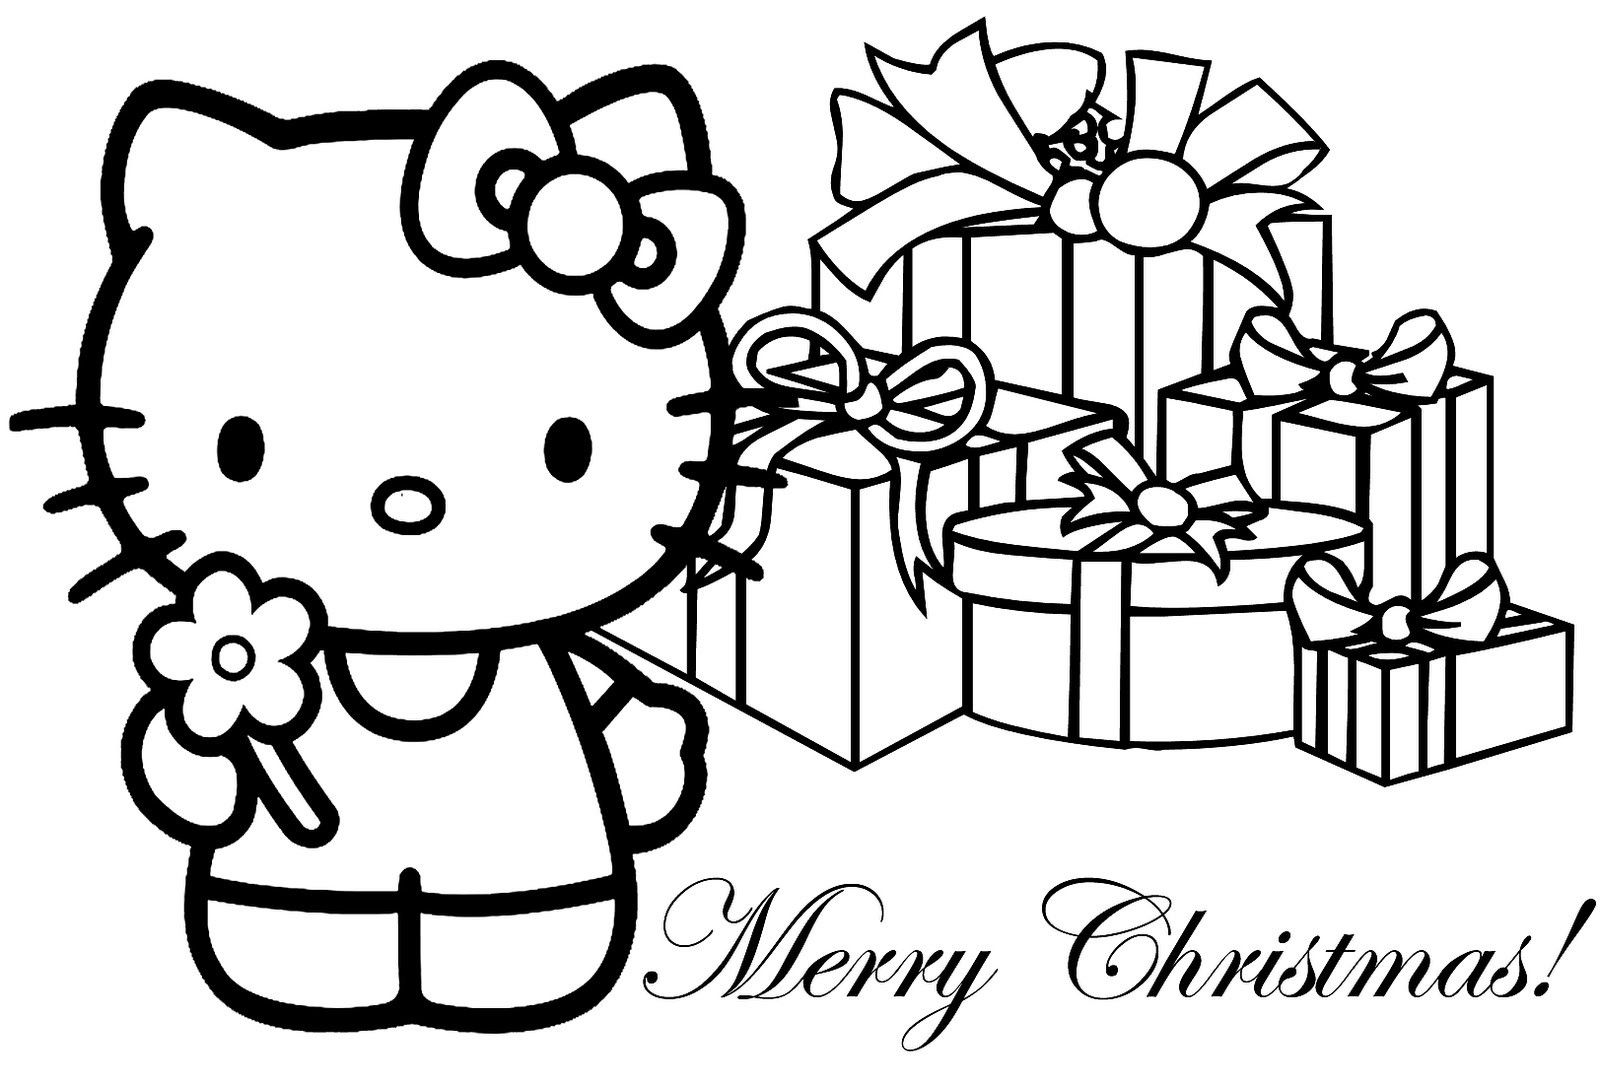 Hello Kitty Christmas Coloring Pages For Kids Hello Kitty Coloring Pages For Kid Hello Kitty Colouring Pages Hello Kitty Coloring Free Christmas Coloring Pages